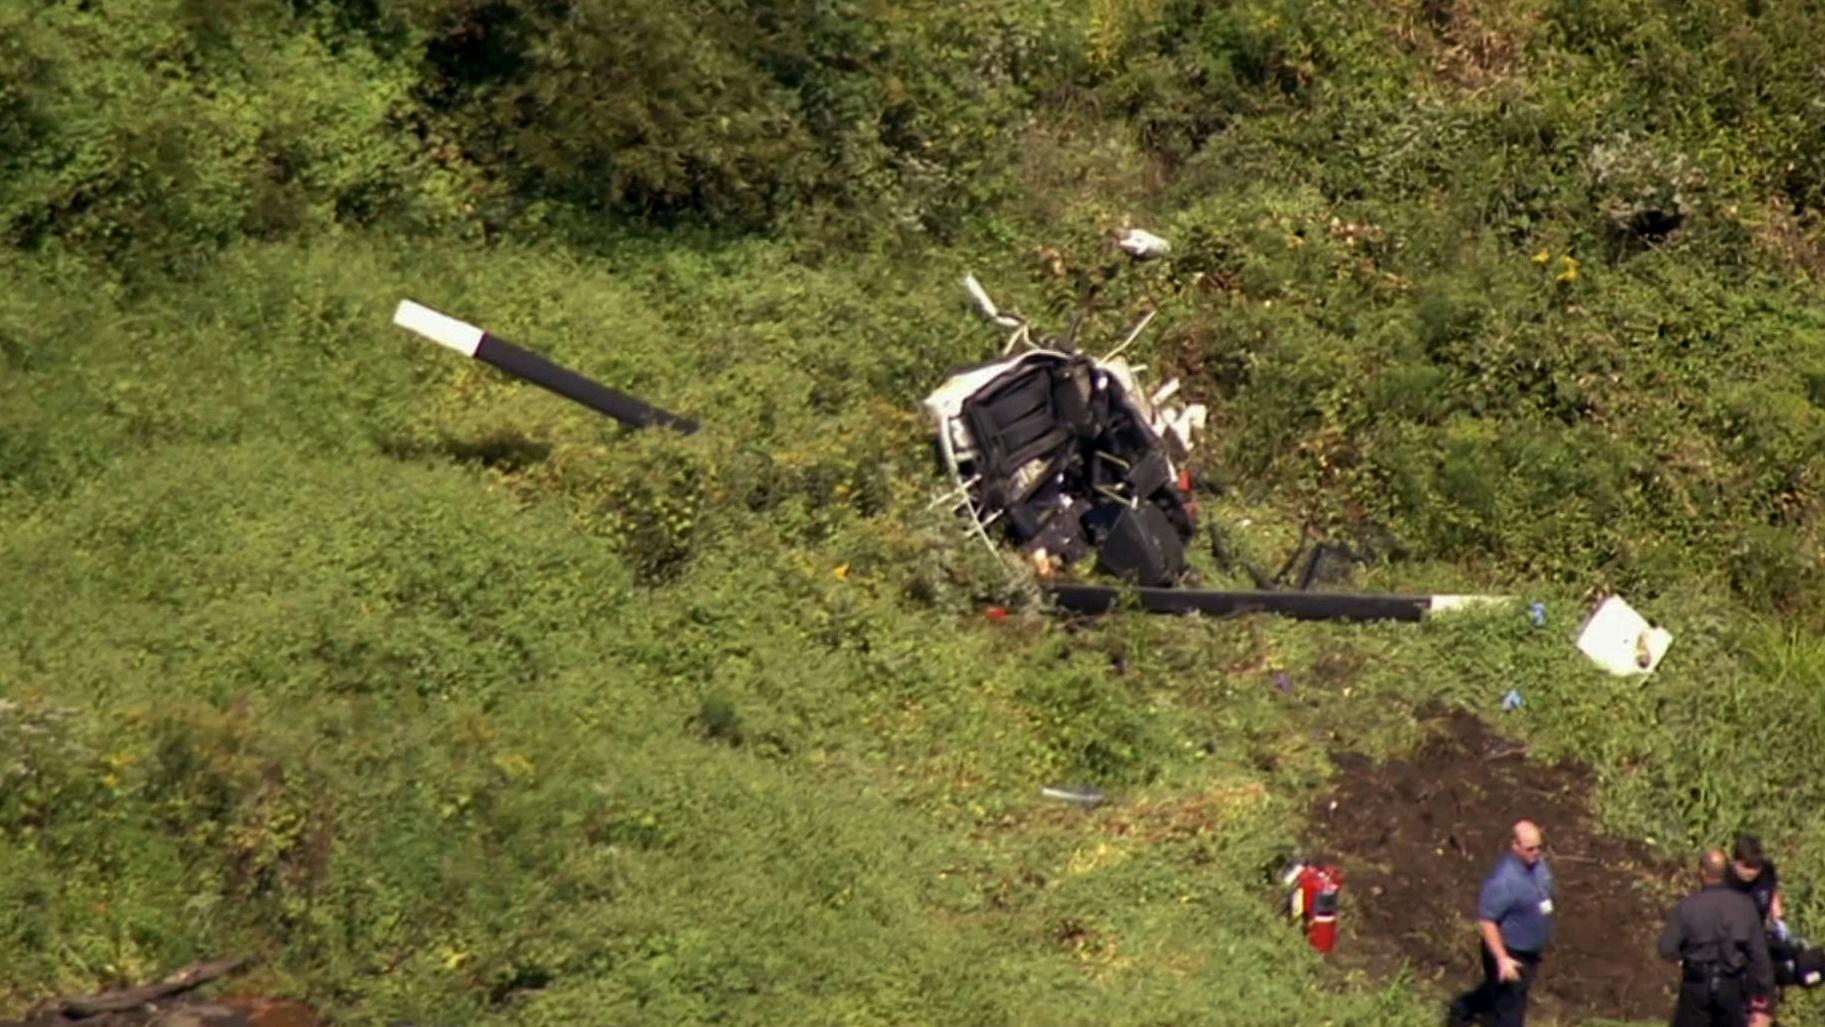 In this image from video provided by NBC10 Philadelphia, first responders are positioned near the wreckage of a helicopter in Lumberton, N.J., Friday, Sept. 8, 2017. The Federal Aviation Administration says the helicopter crashed into a wooded area near the Flying W Airport in Medford, N.J., about 20 miles east of Philadelphia. The official website for Montgomery Gentry says Troy Gentry, half of the country duo, died in the crash.  (NBC10 Philadelphia via AP)